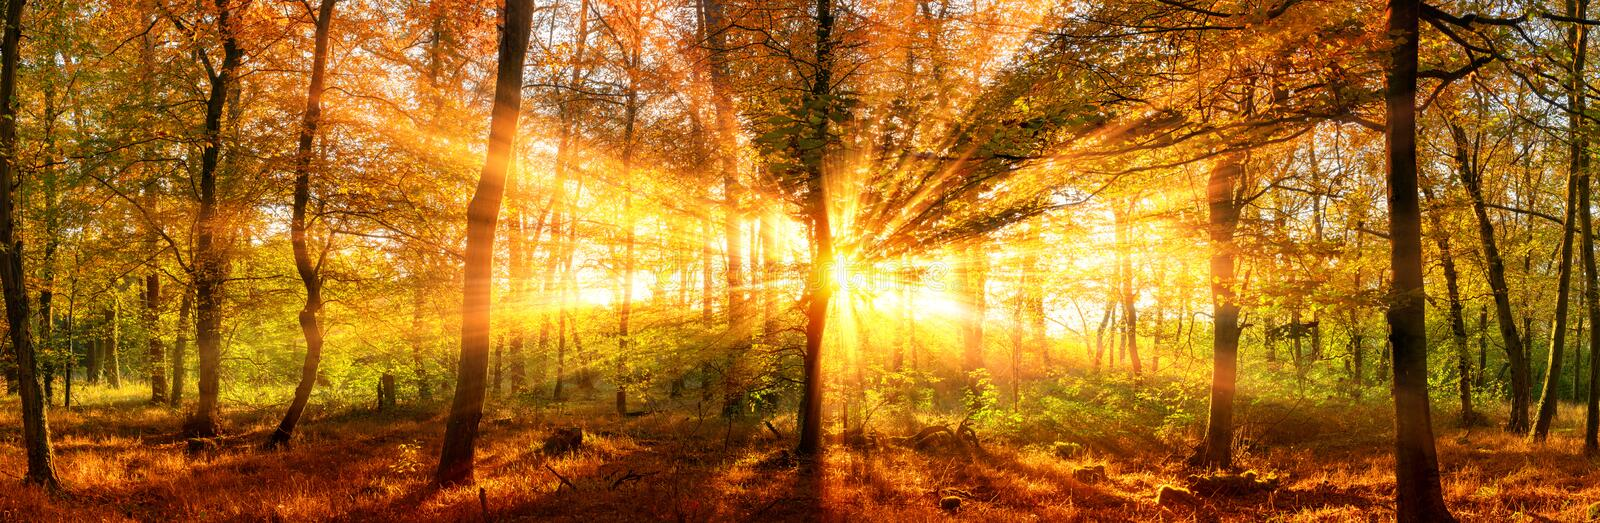 Autumn forest panorama with vivid gold sunbeams. Autumn forest panoramic landscape shot with vivid gold sunrays falling through the trees stock images